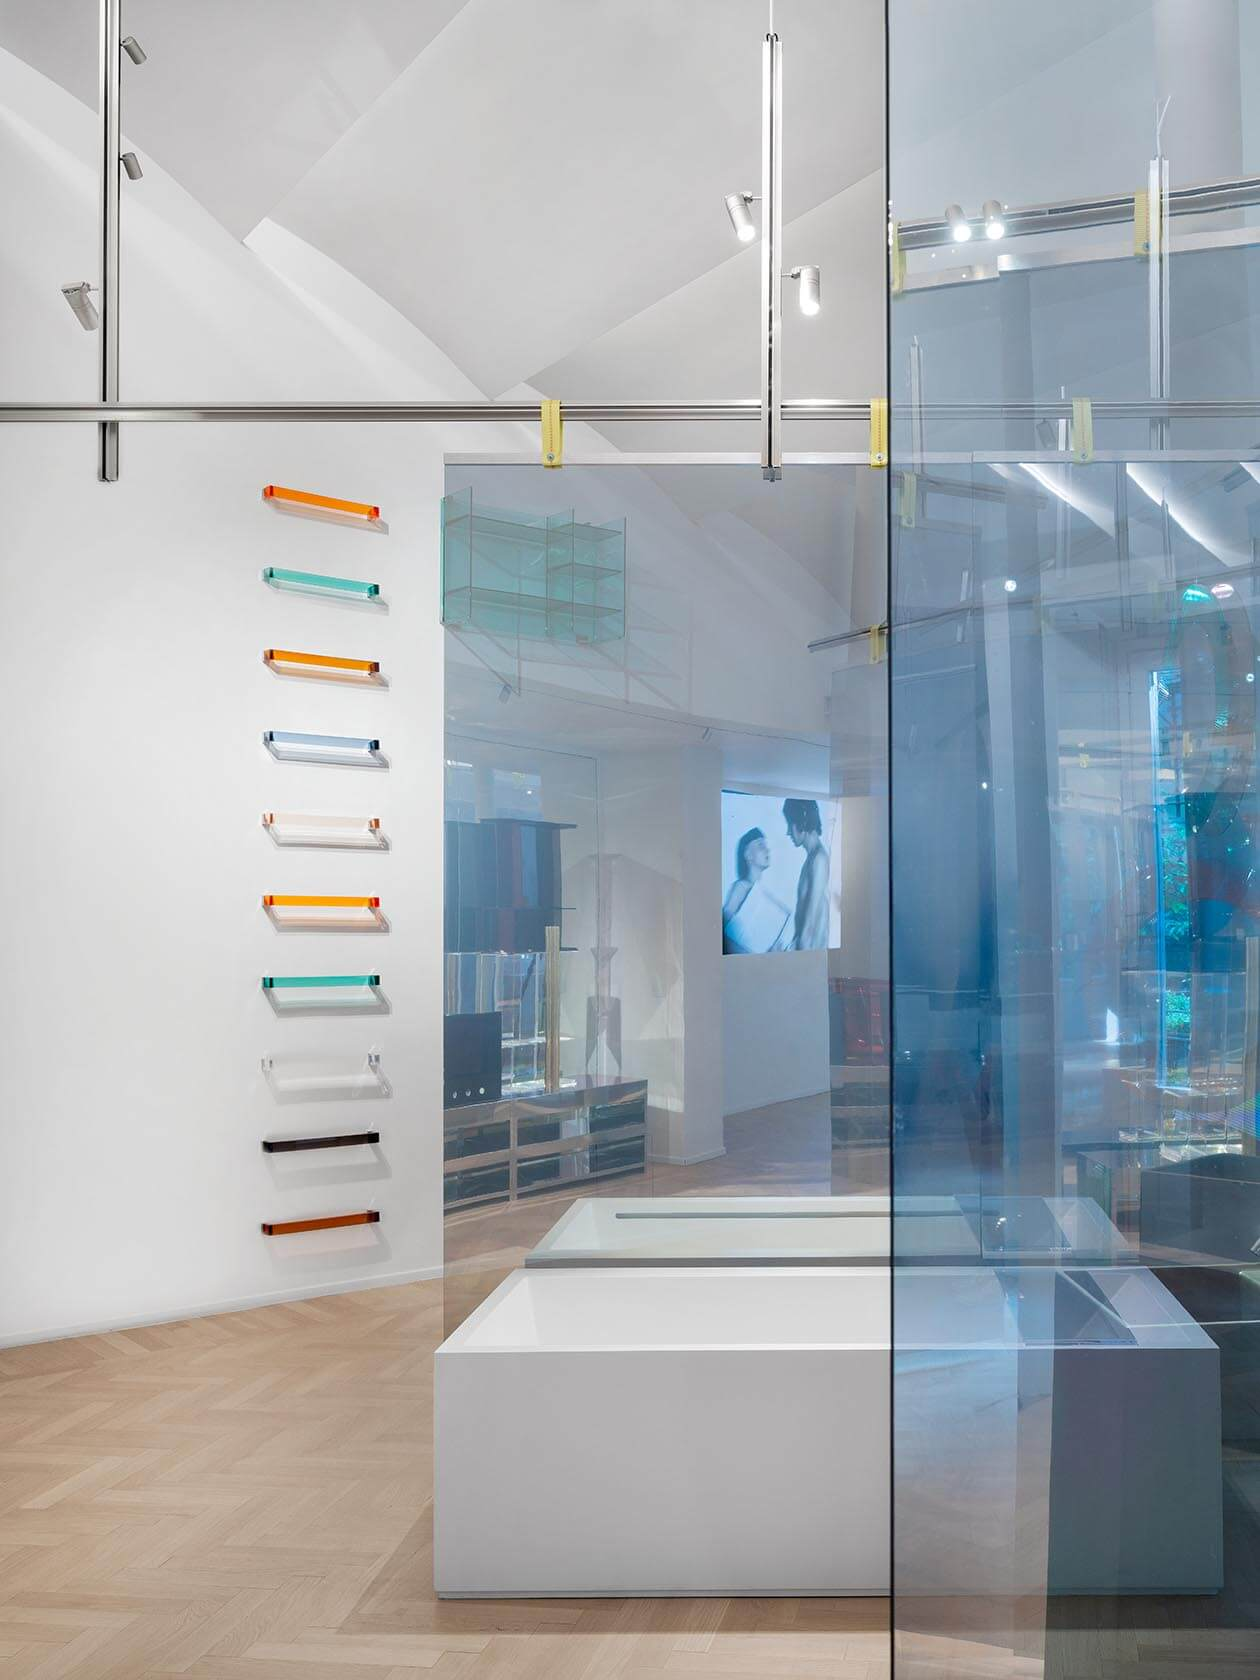 Glass walls, mirrors and screening build to the temporary Laufen Space exhibition.